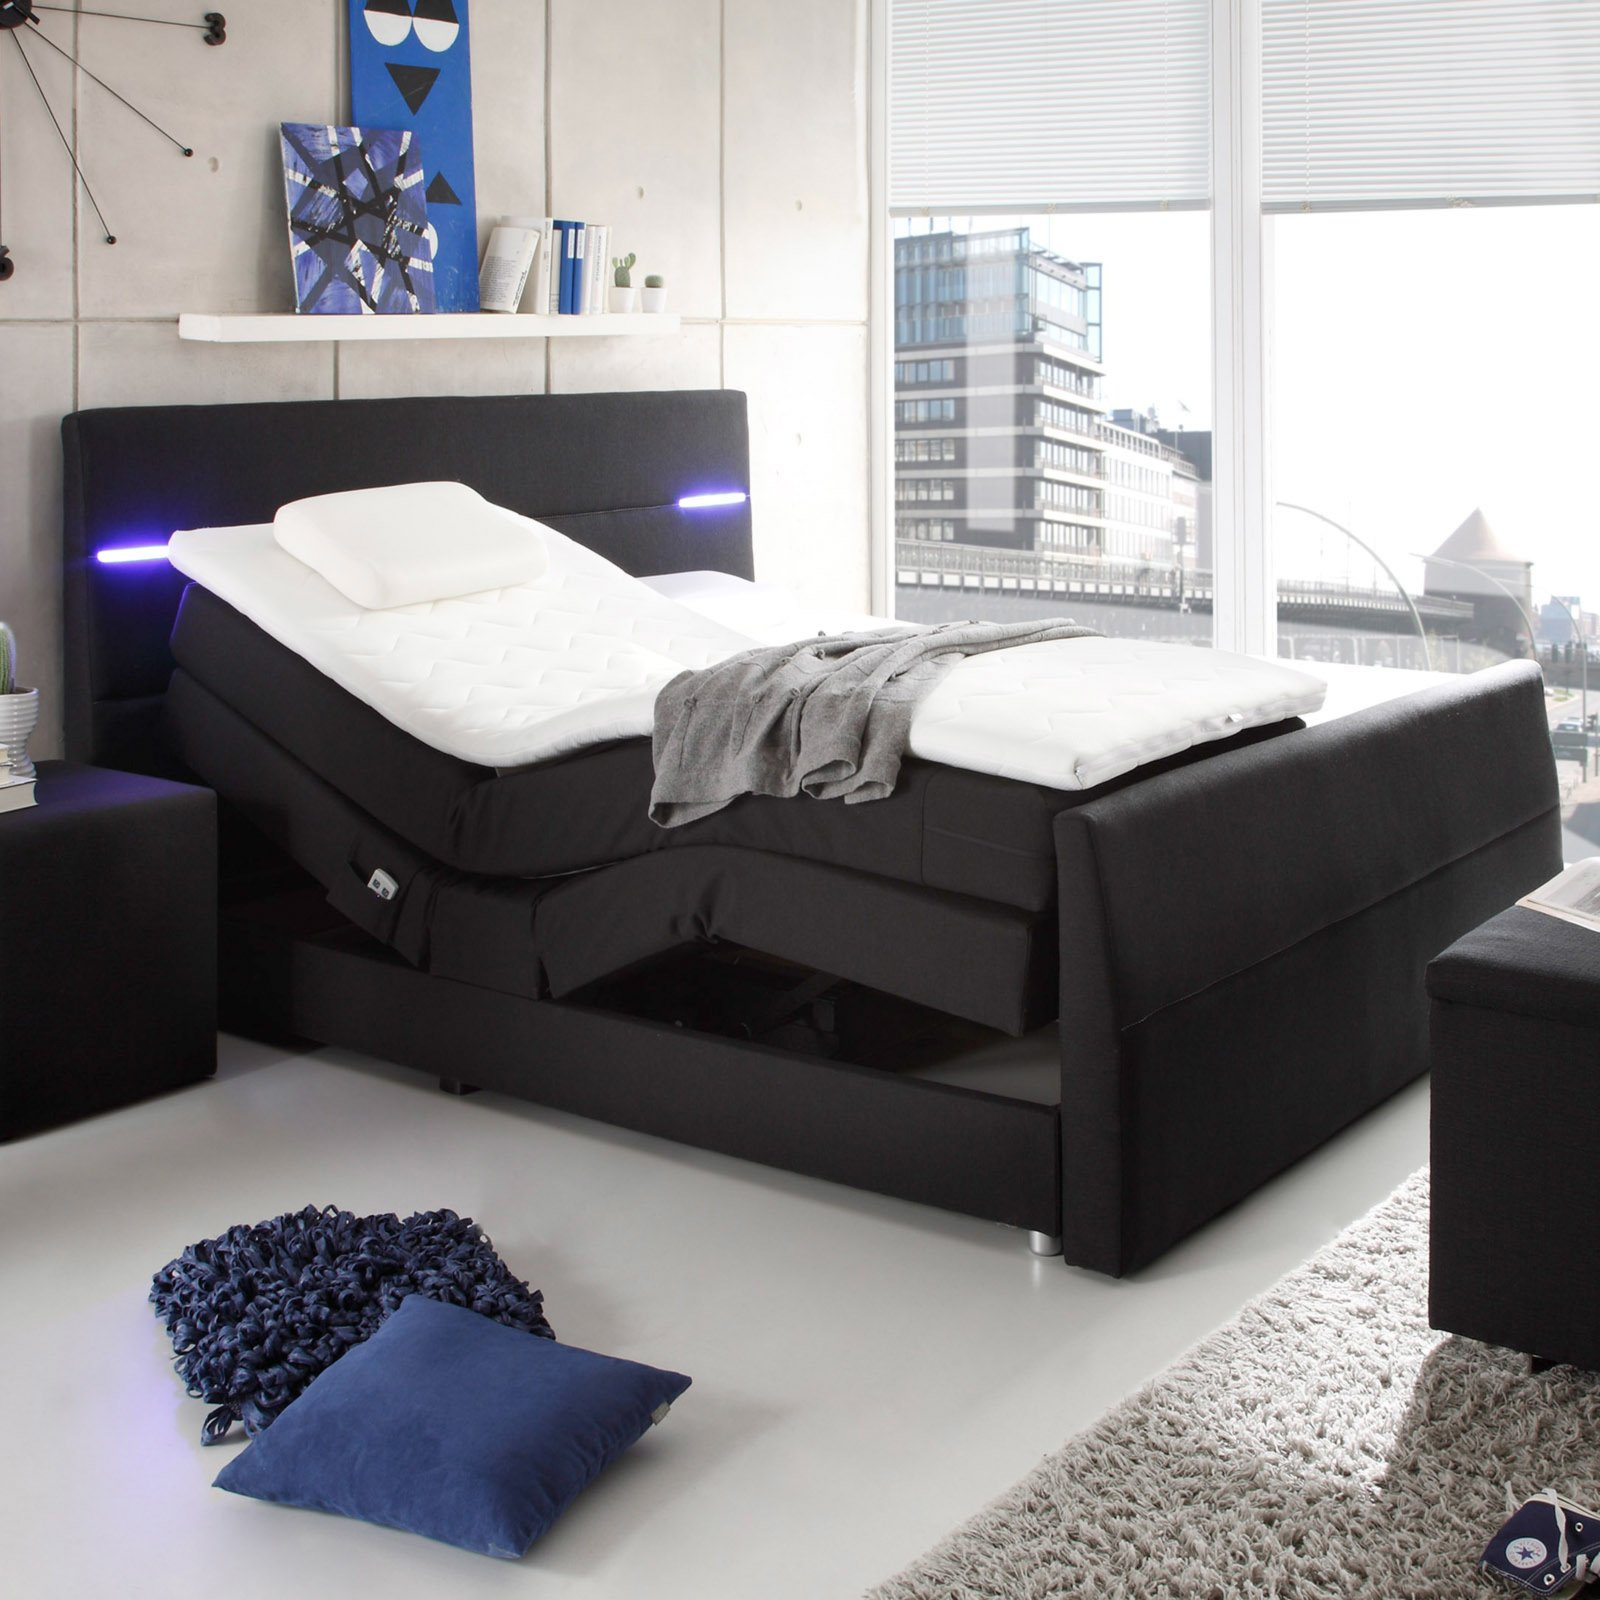 roller boxspringbett nebraska schwarz 180x200 cm 4250826314164 ebay. Black Bedroom Furniture Sets. Home Design Ideas